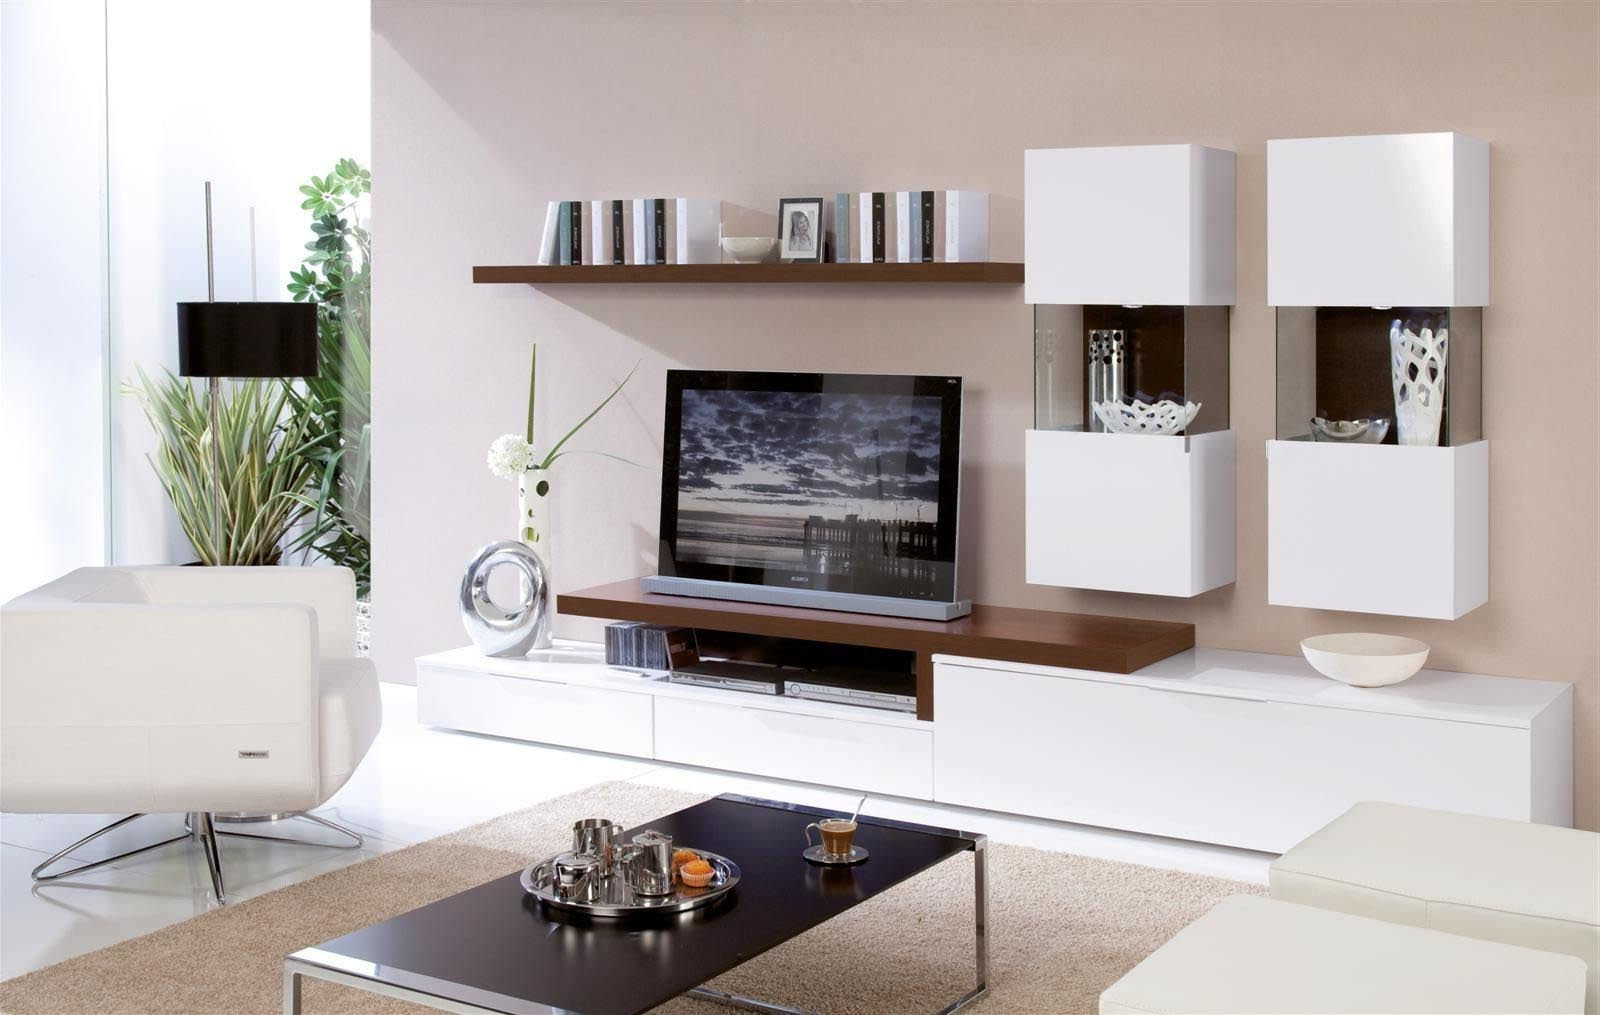 inspired by decorative wall shelves decorative wall mounted shelves